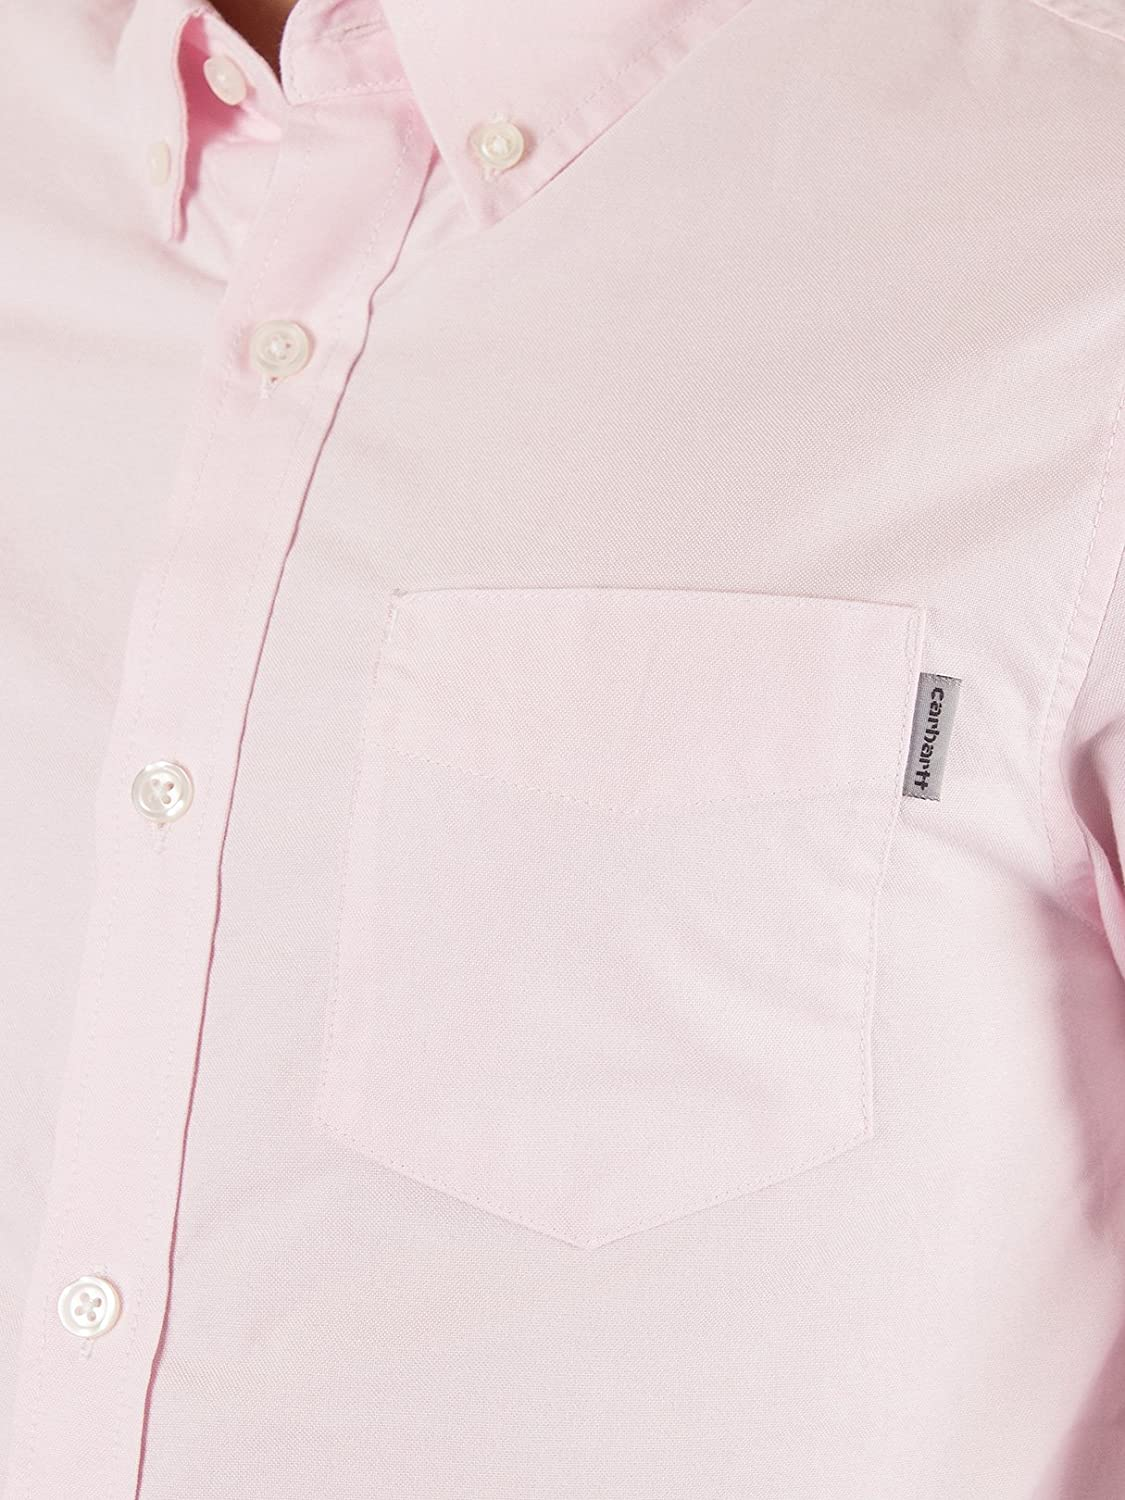 Carhartt WIP Men's Slim Fit Button Down Pocket Shirt, Pink